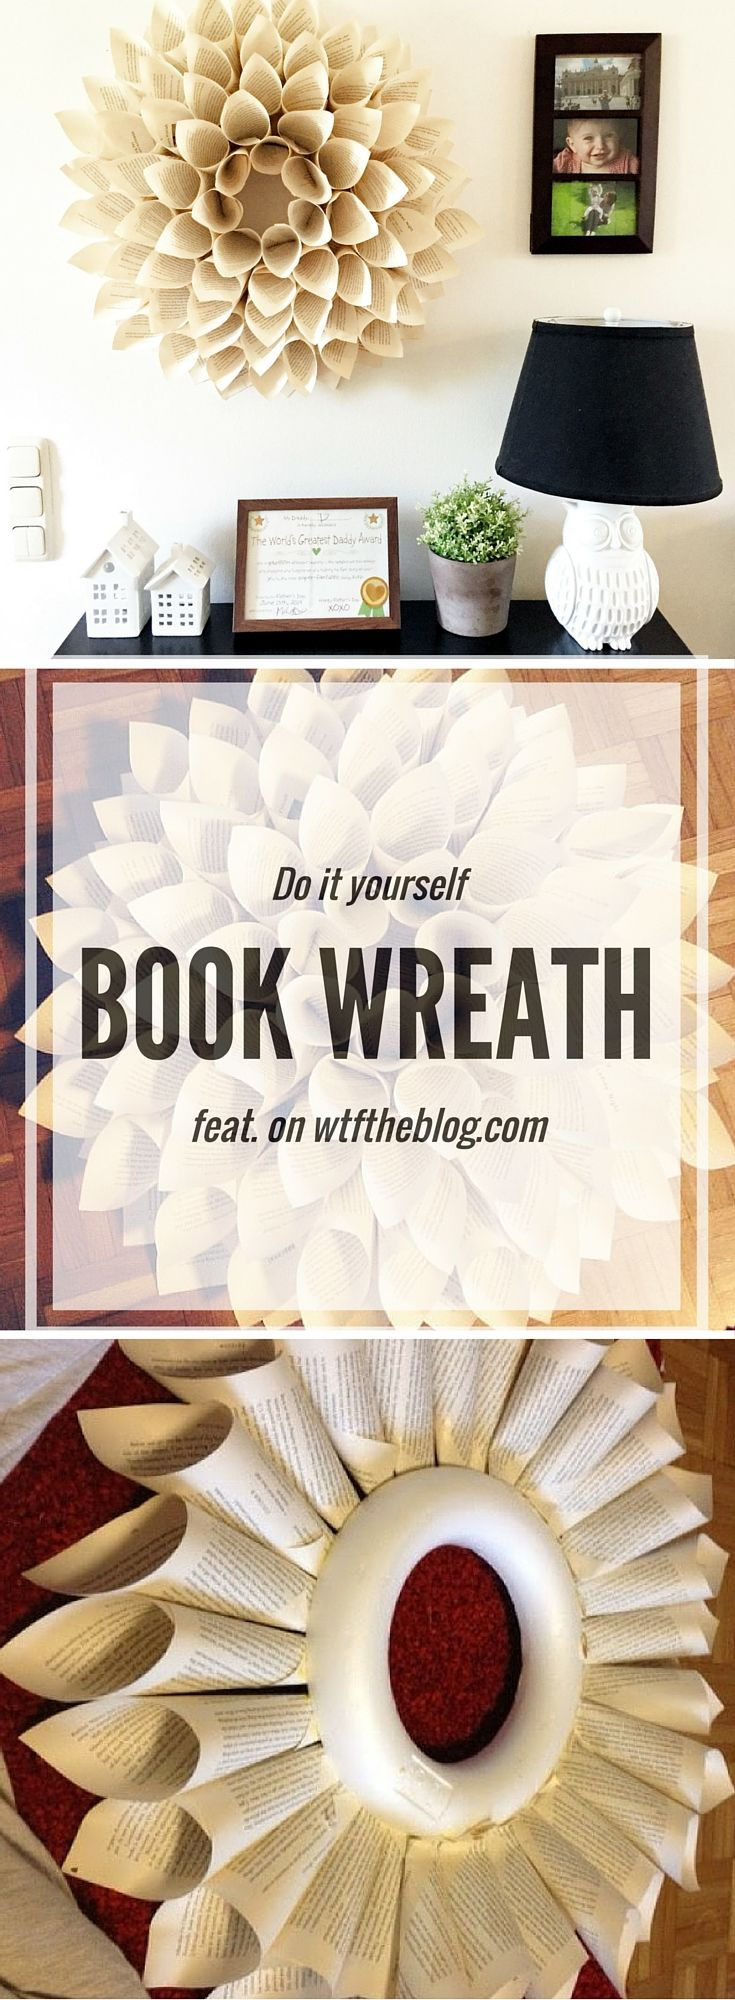 Diy book page wreath pinterest wreaths easy and books diy book page wreath so easy and perfect for all of those old books to be put to good use solutioingenieria Images